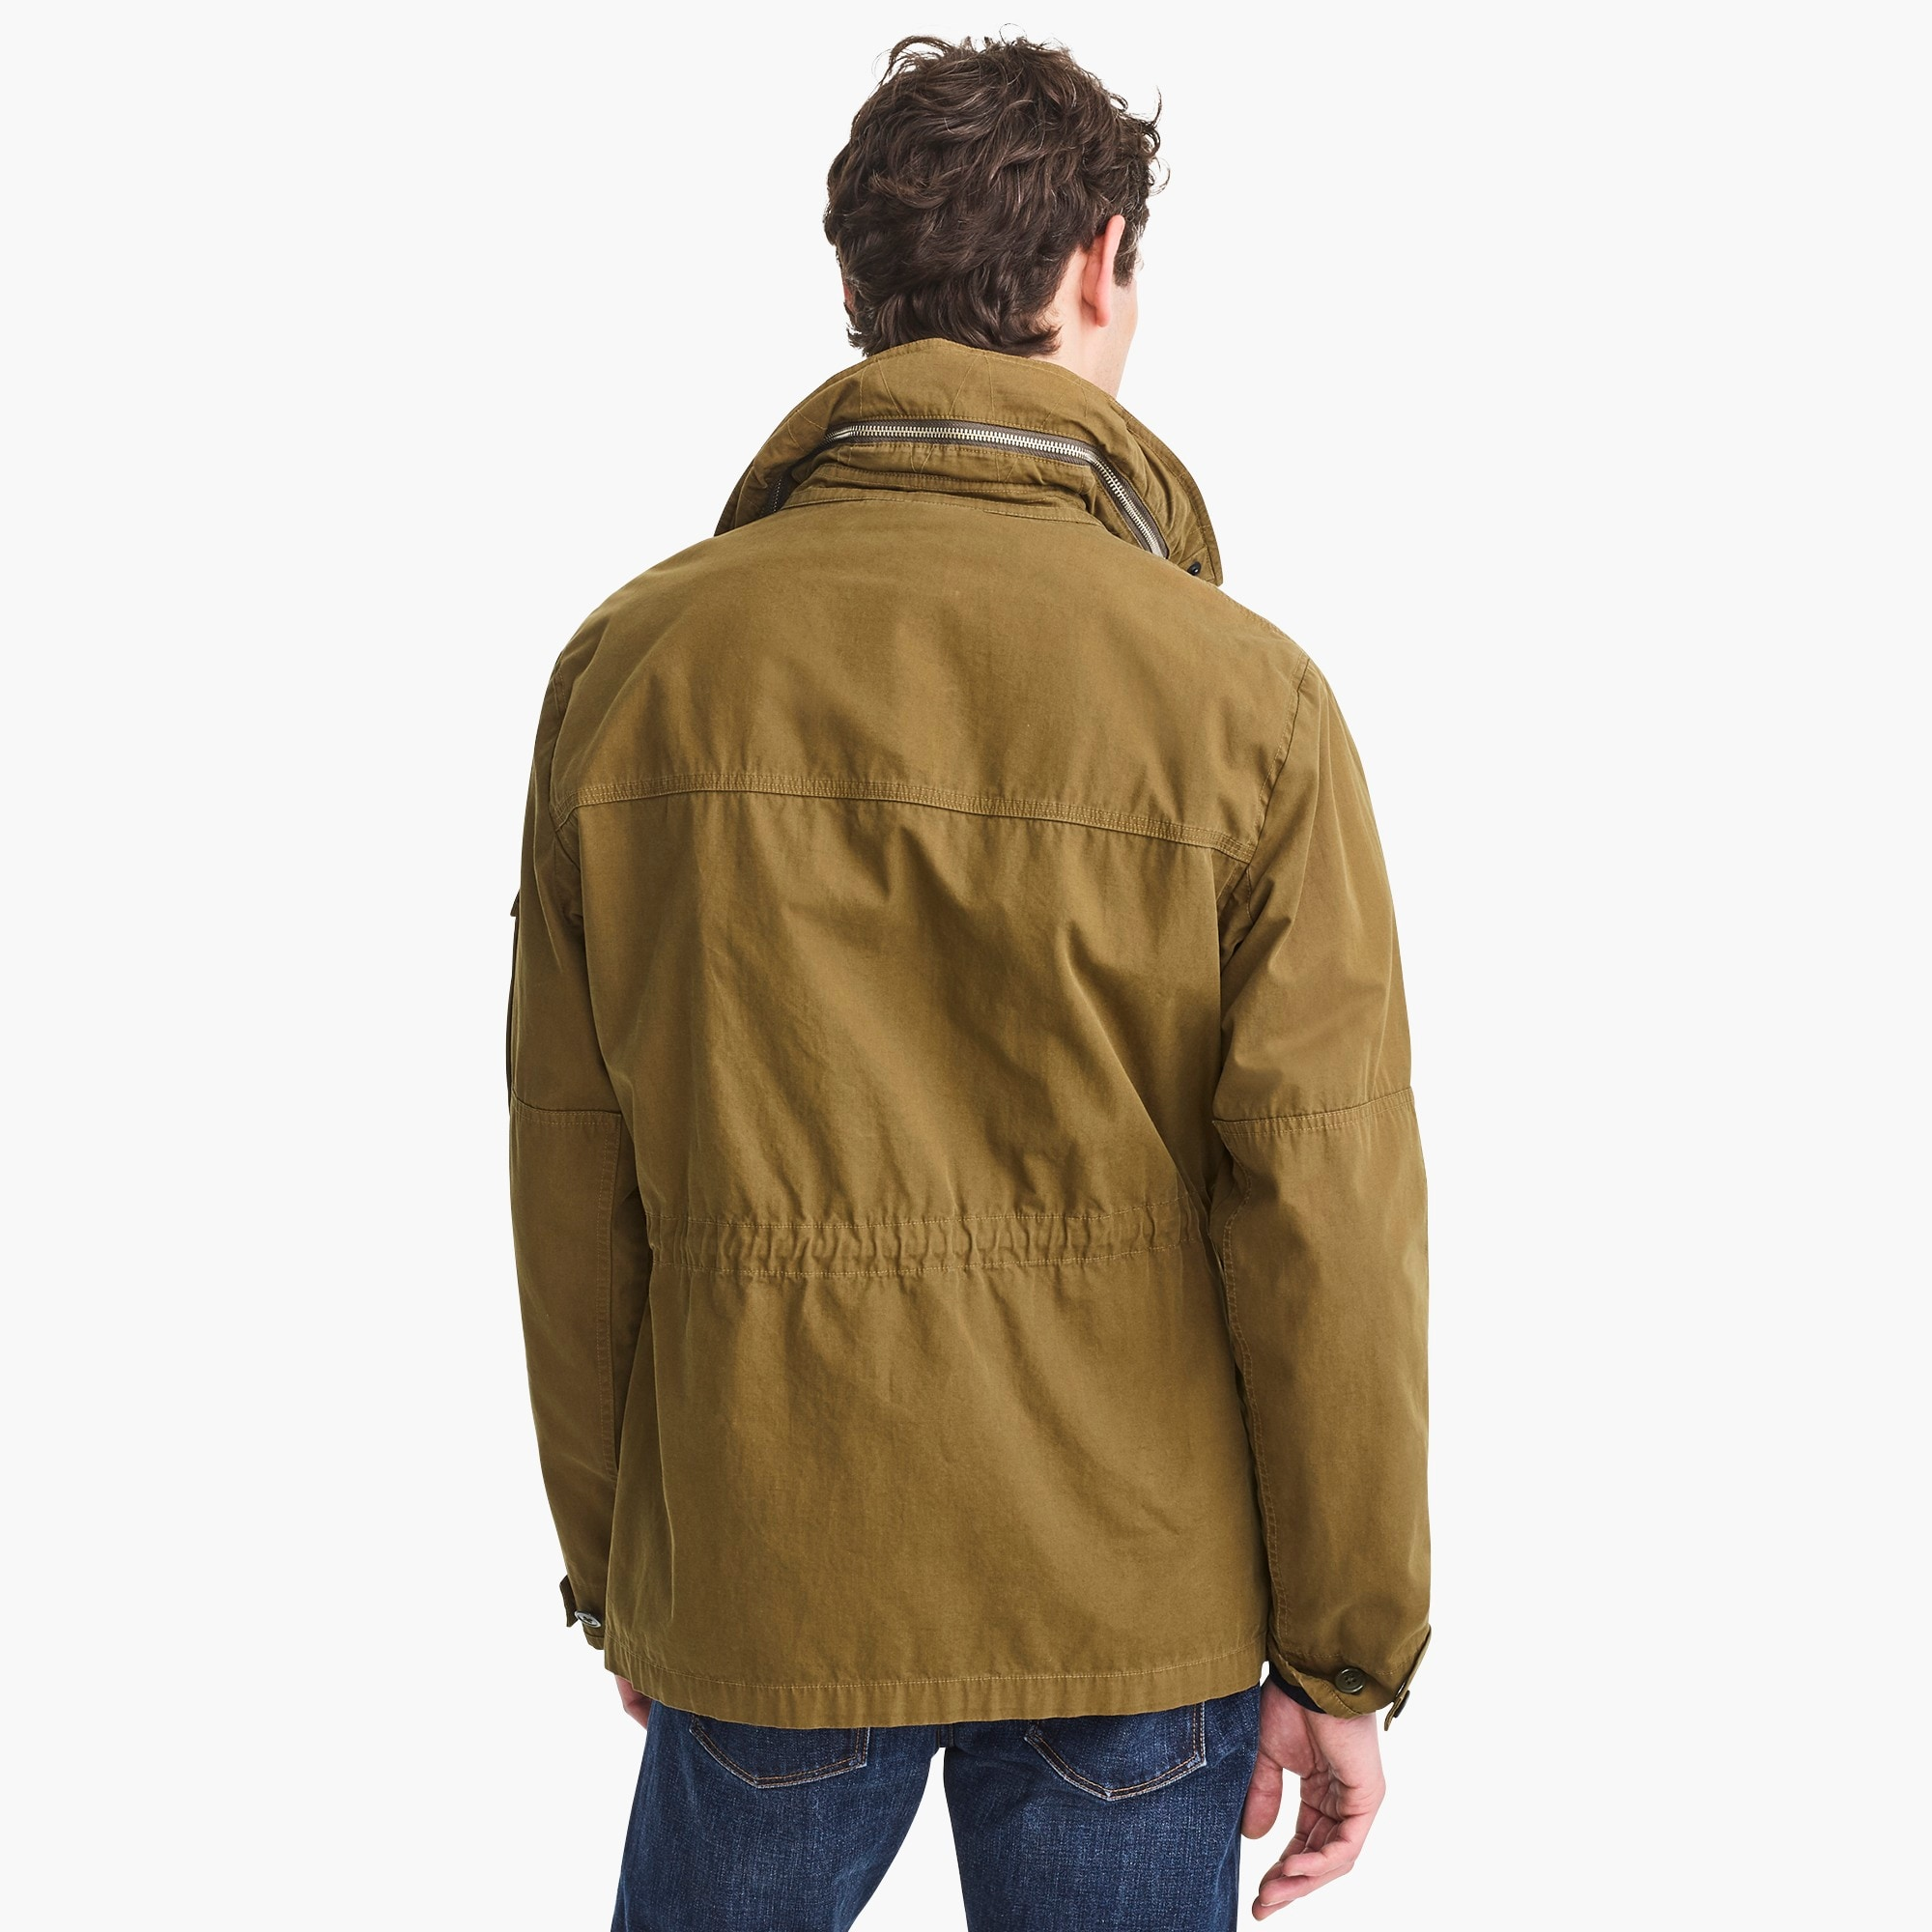 Image 3 for Tall field mechanic jacket